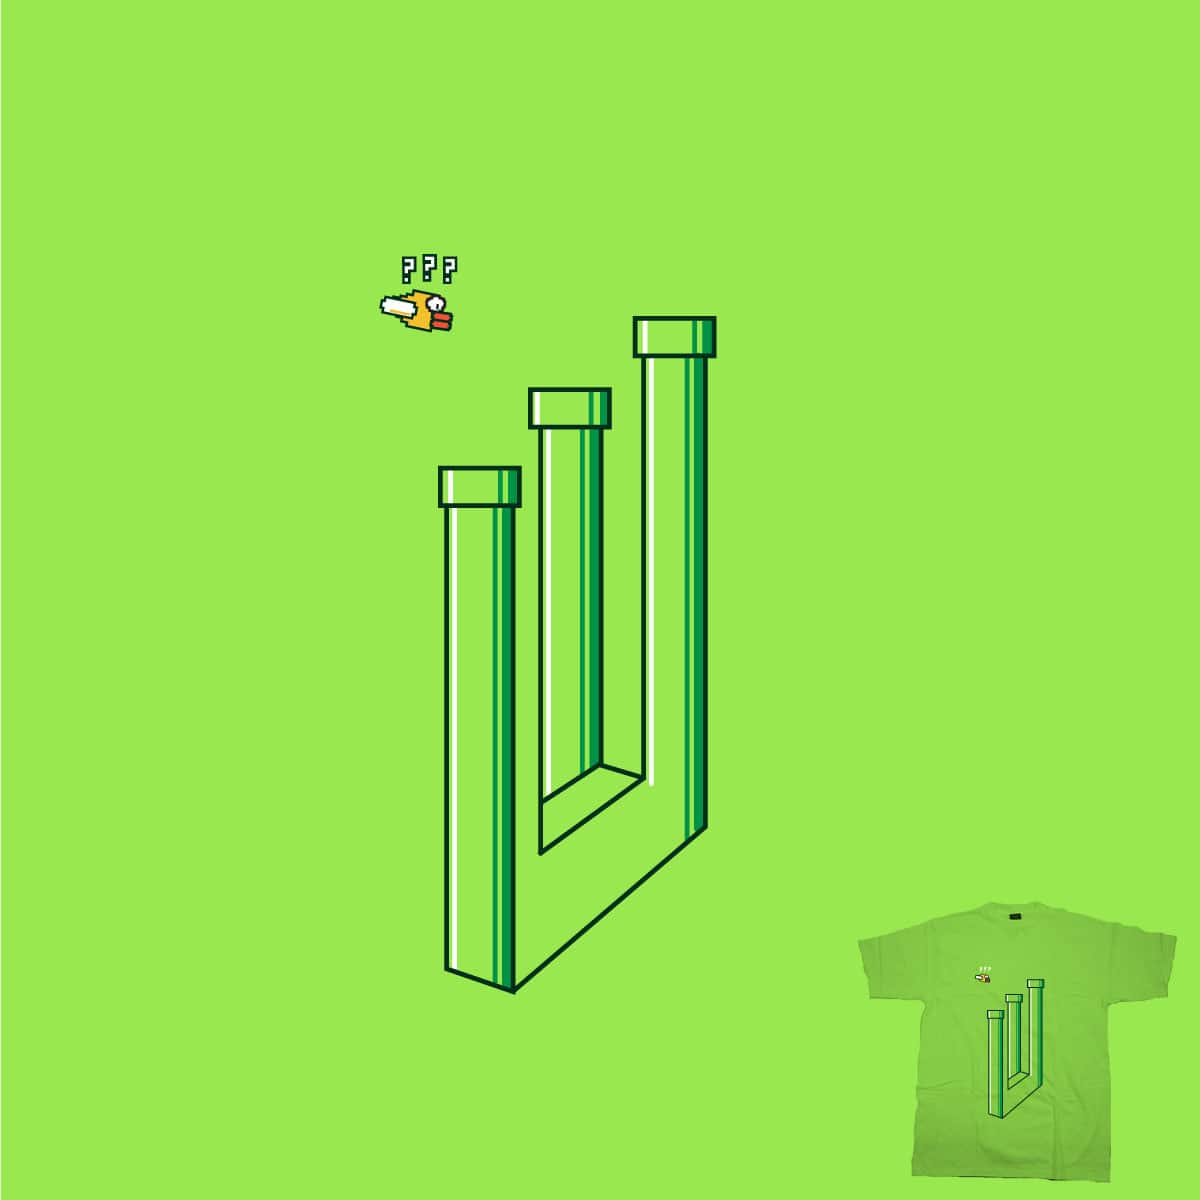 Impossible Game by secretly robots on Threadless